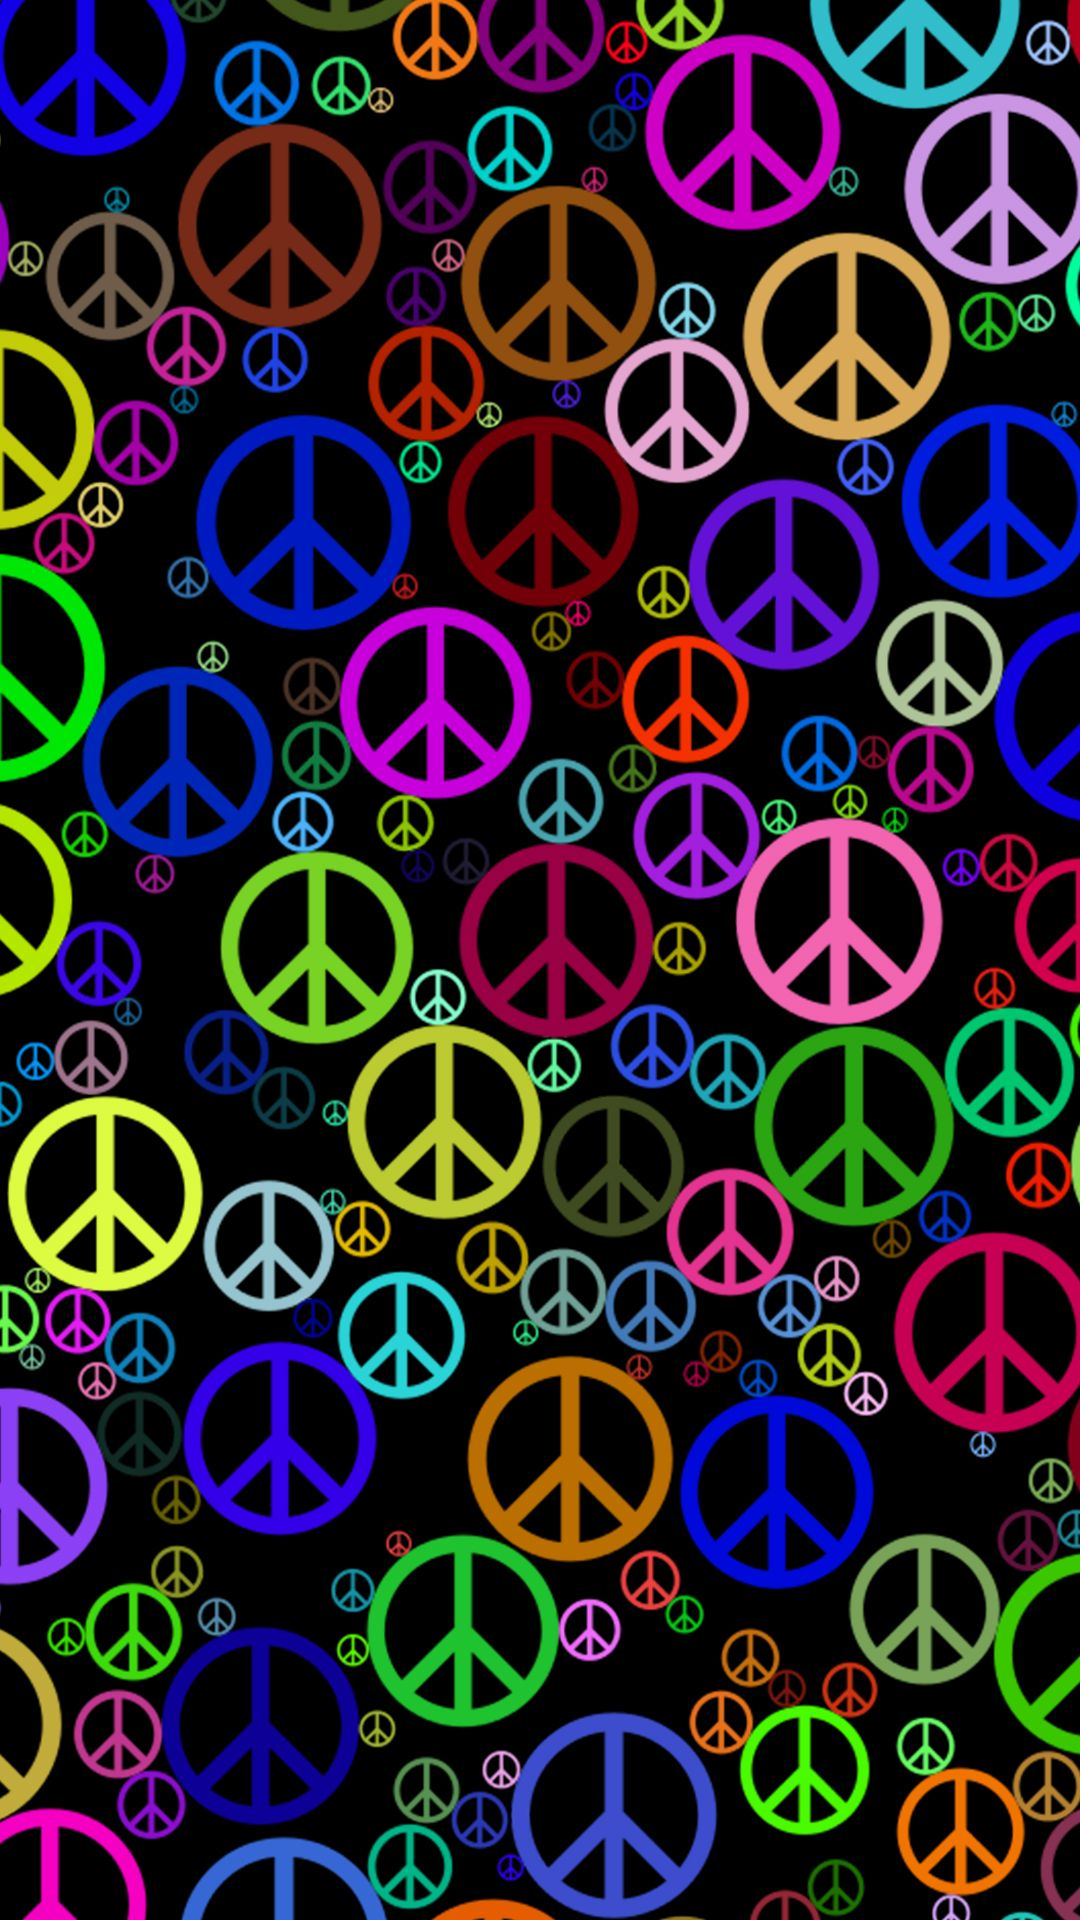 Peace Hd Wallpaper For Your Mobile Phone Cool Wallpapers For Phones Peace Sign Art Uhd Wallpaper